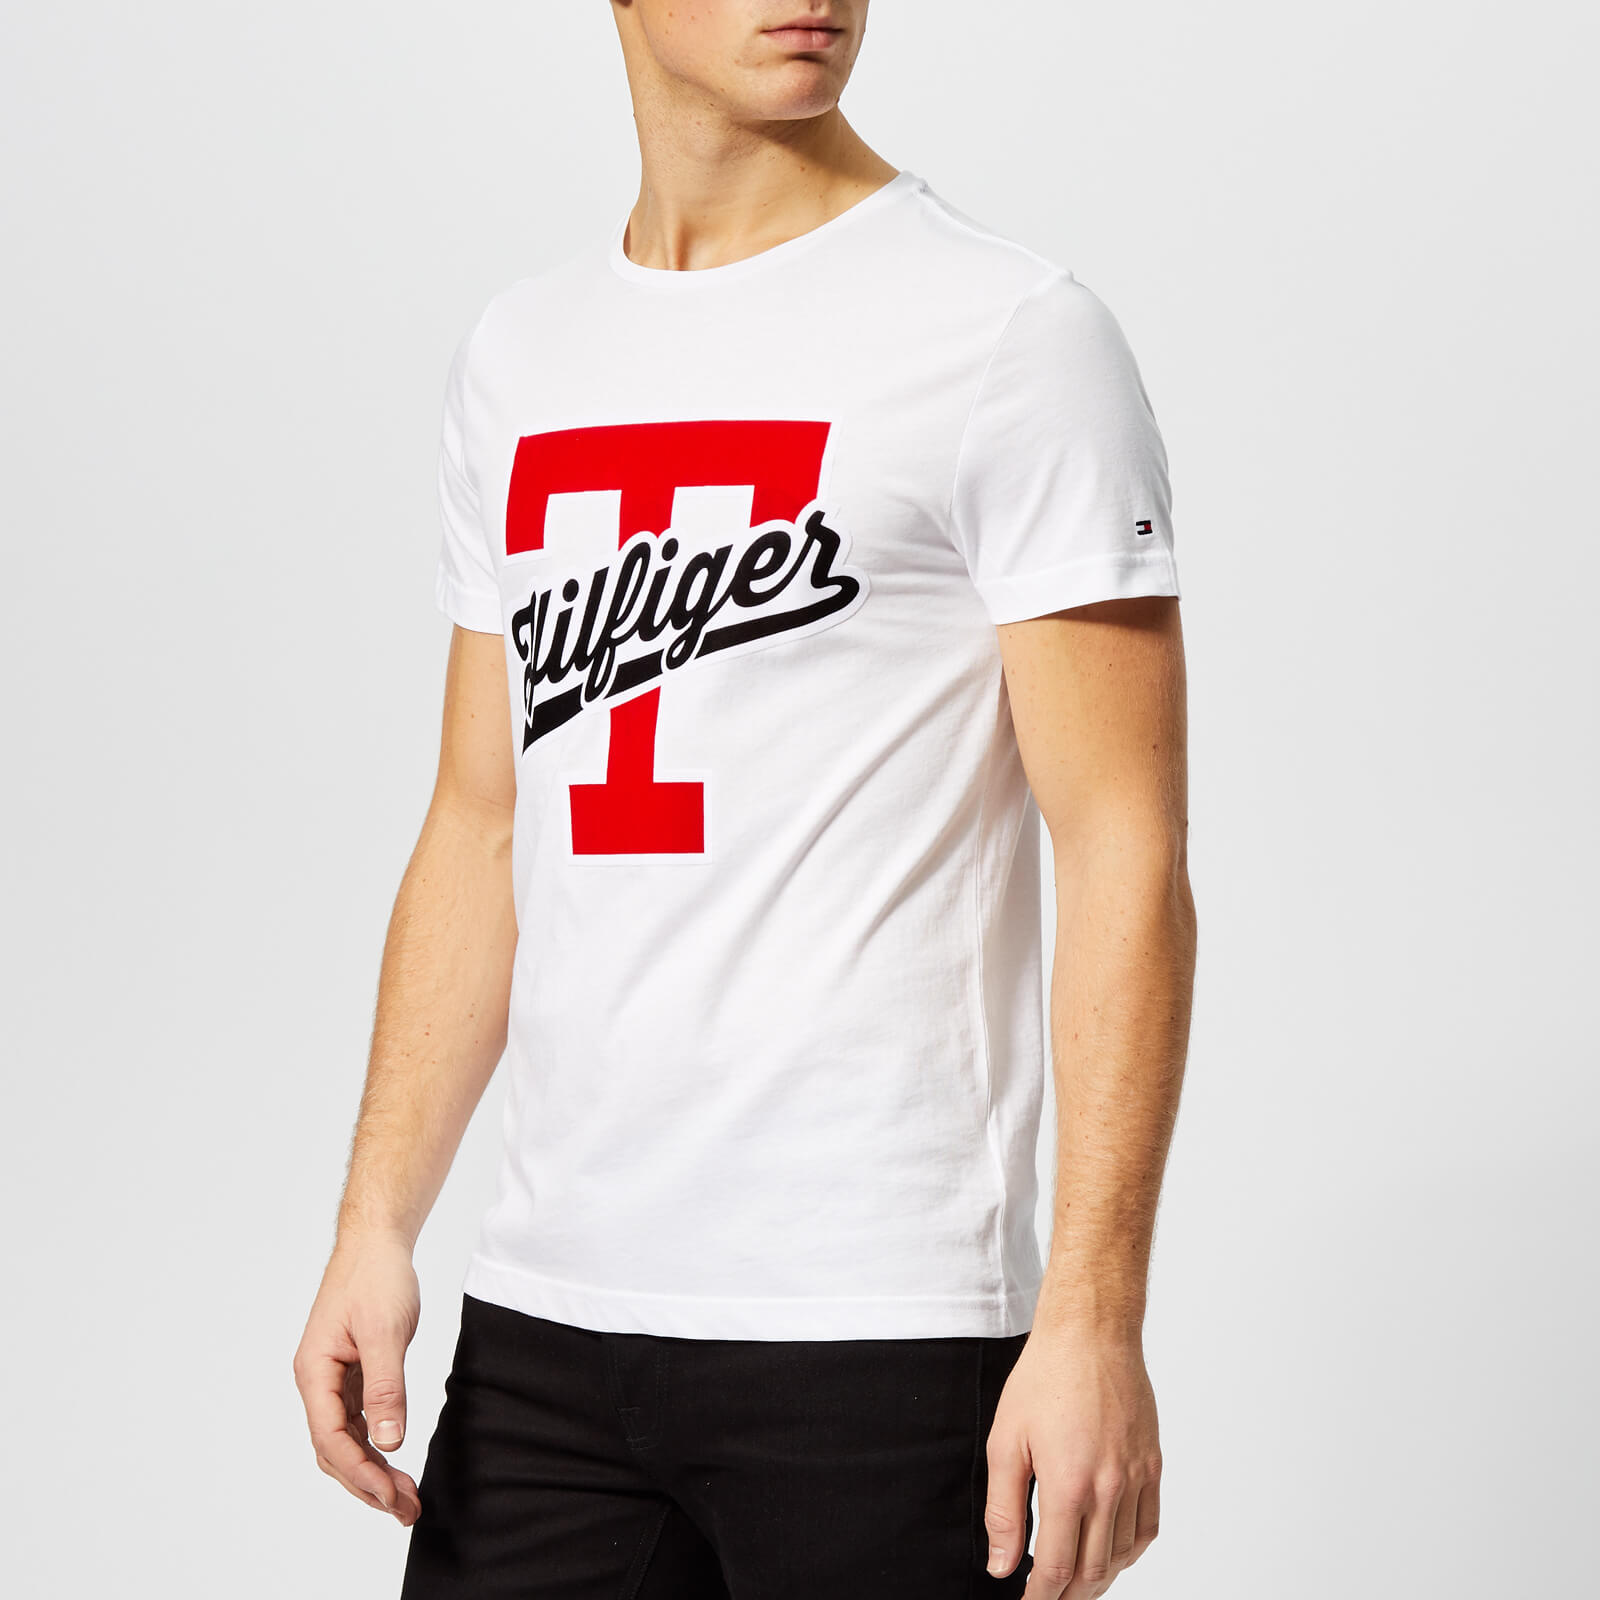 714806d2f Tommy Hilfiger Men's T-Script Logo T-Shirt - Bright White Clothing |  TheHut.com